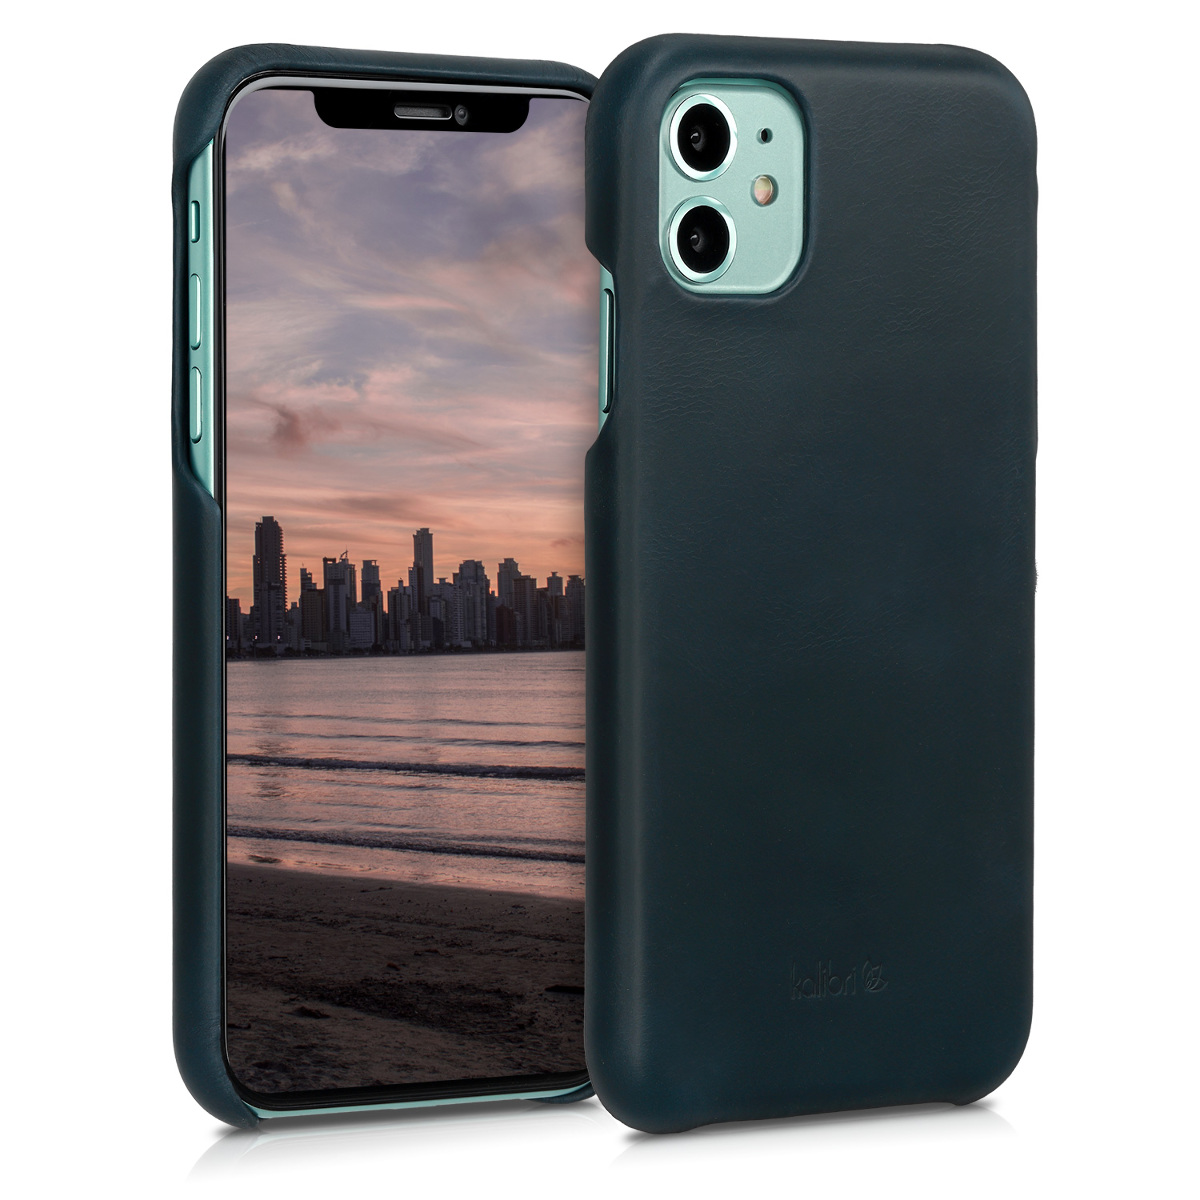 Kalibri Σκληρή Δερμάτινη Θήκη Apple iPhone 11 - Smooth Genuine Leather Hard Case - Dark Blue (49737.17)